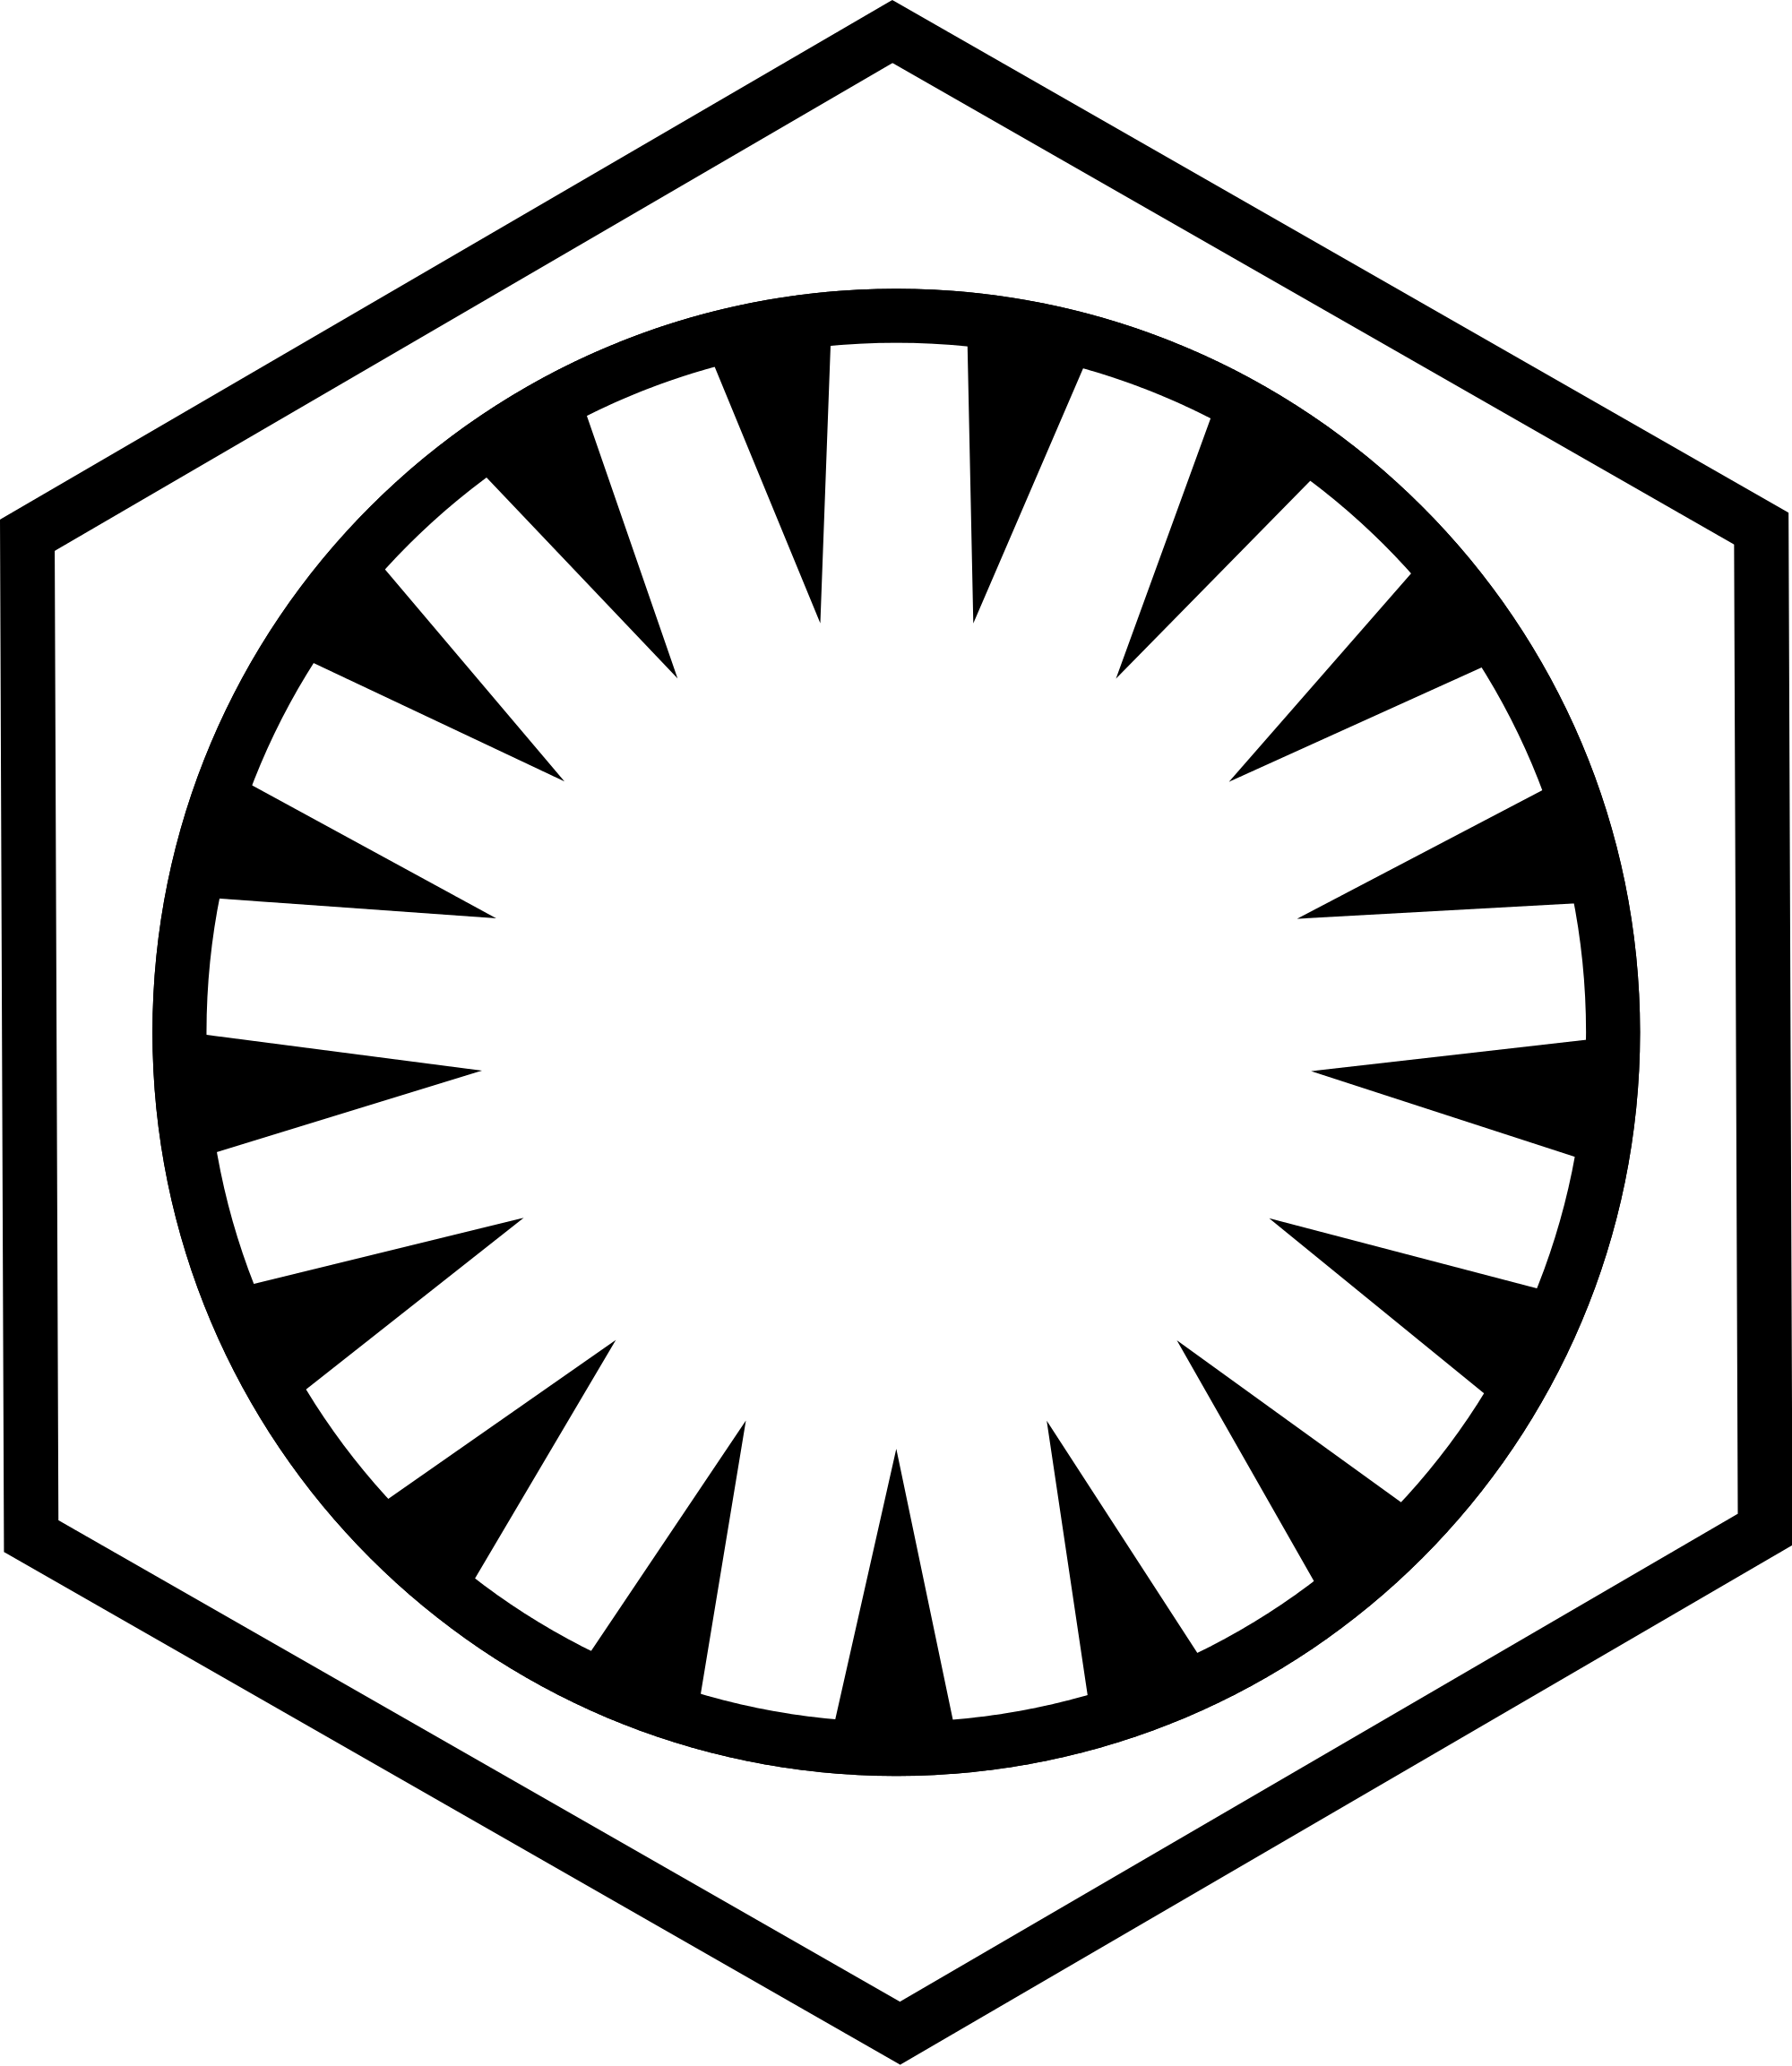 Youtube clipart star wars. First order wikipedia emblem